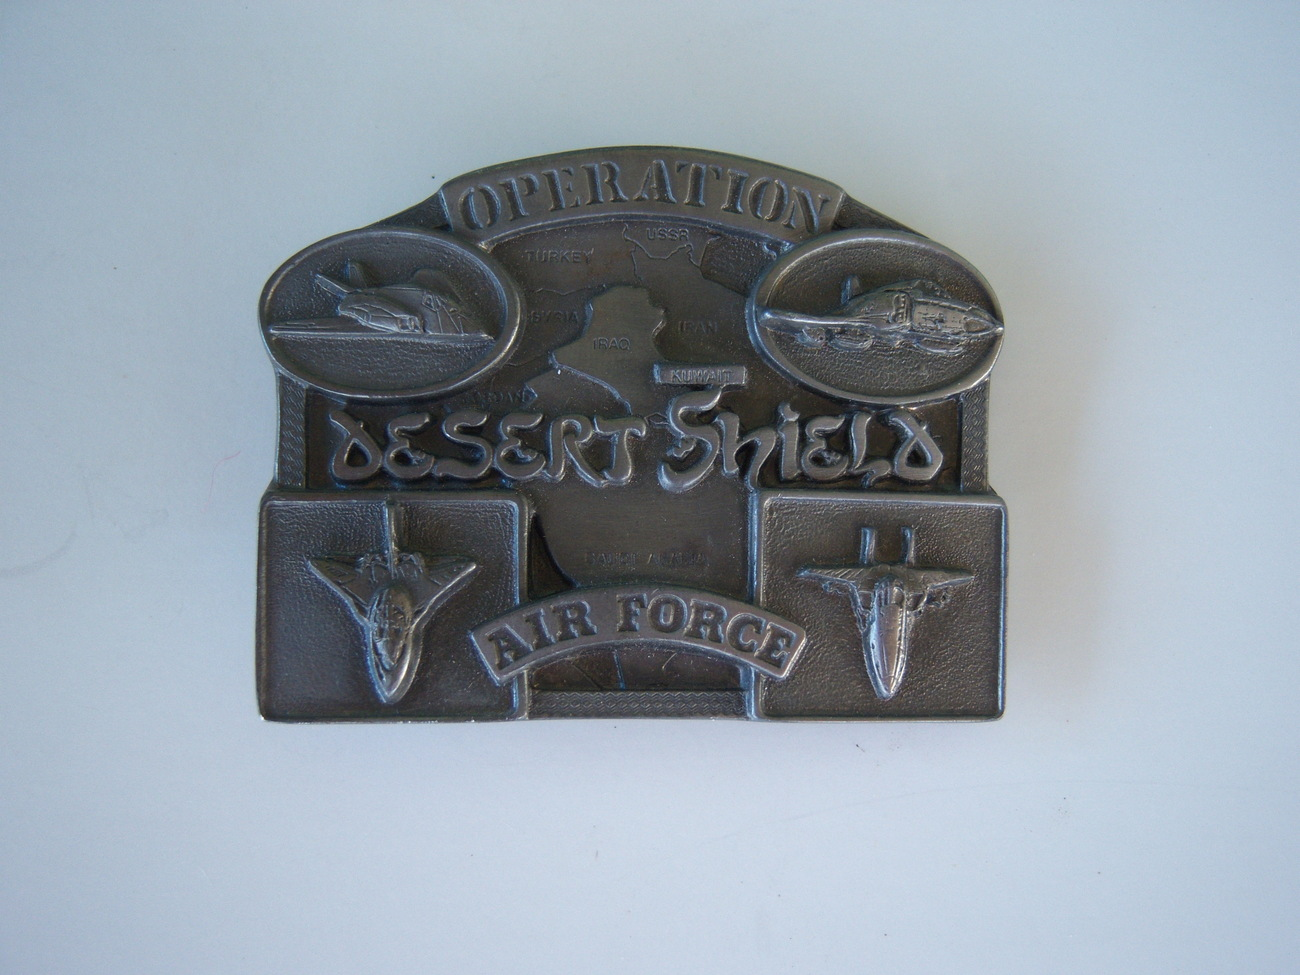 Operation Desert Shield Air Force belt buckle 1990 SN# 2176 of 6033 made in USA